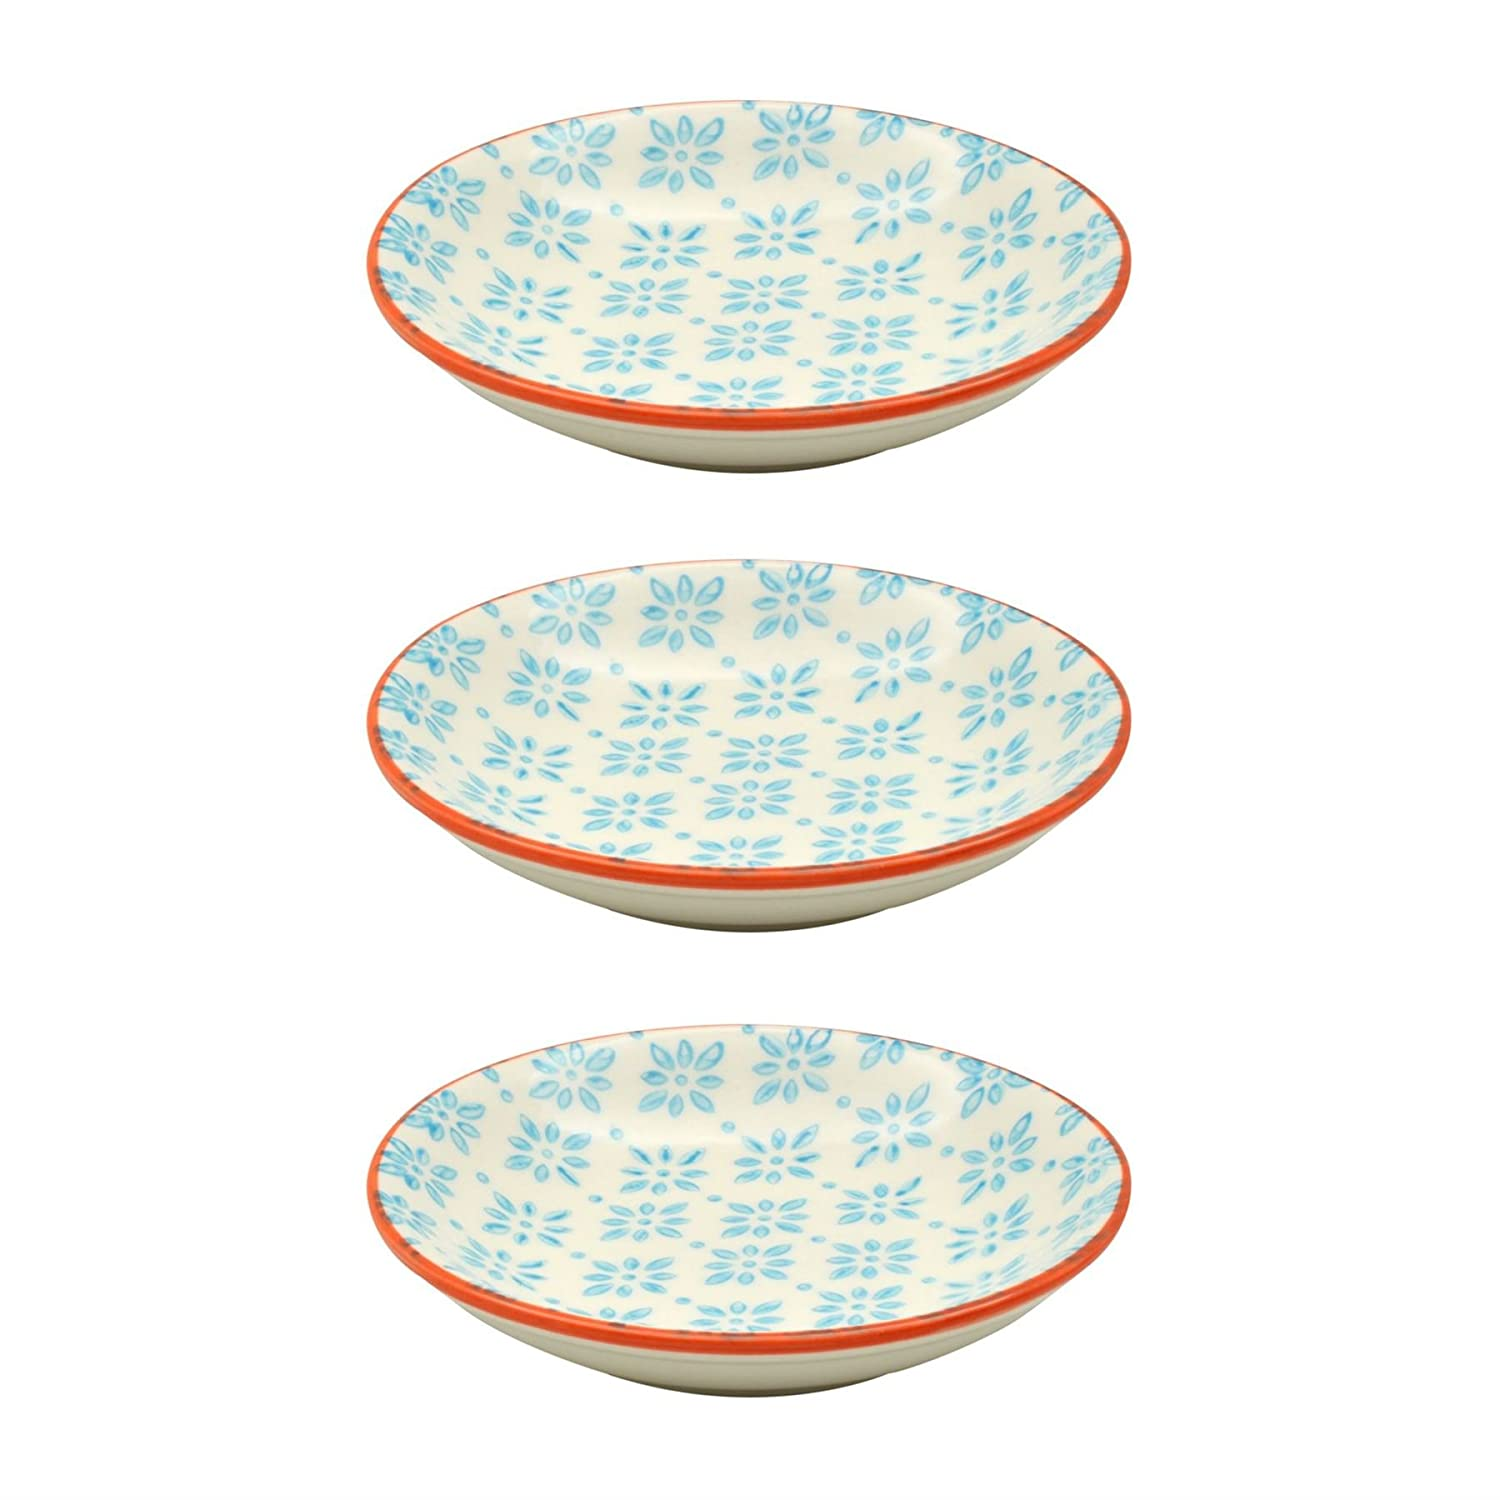 Small Patterned Rice / Soy Sauce / Olive Oil / Dipping Dish - 101mm - Blue / Orange - Box of 3 Nicola Spring